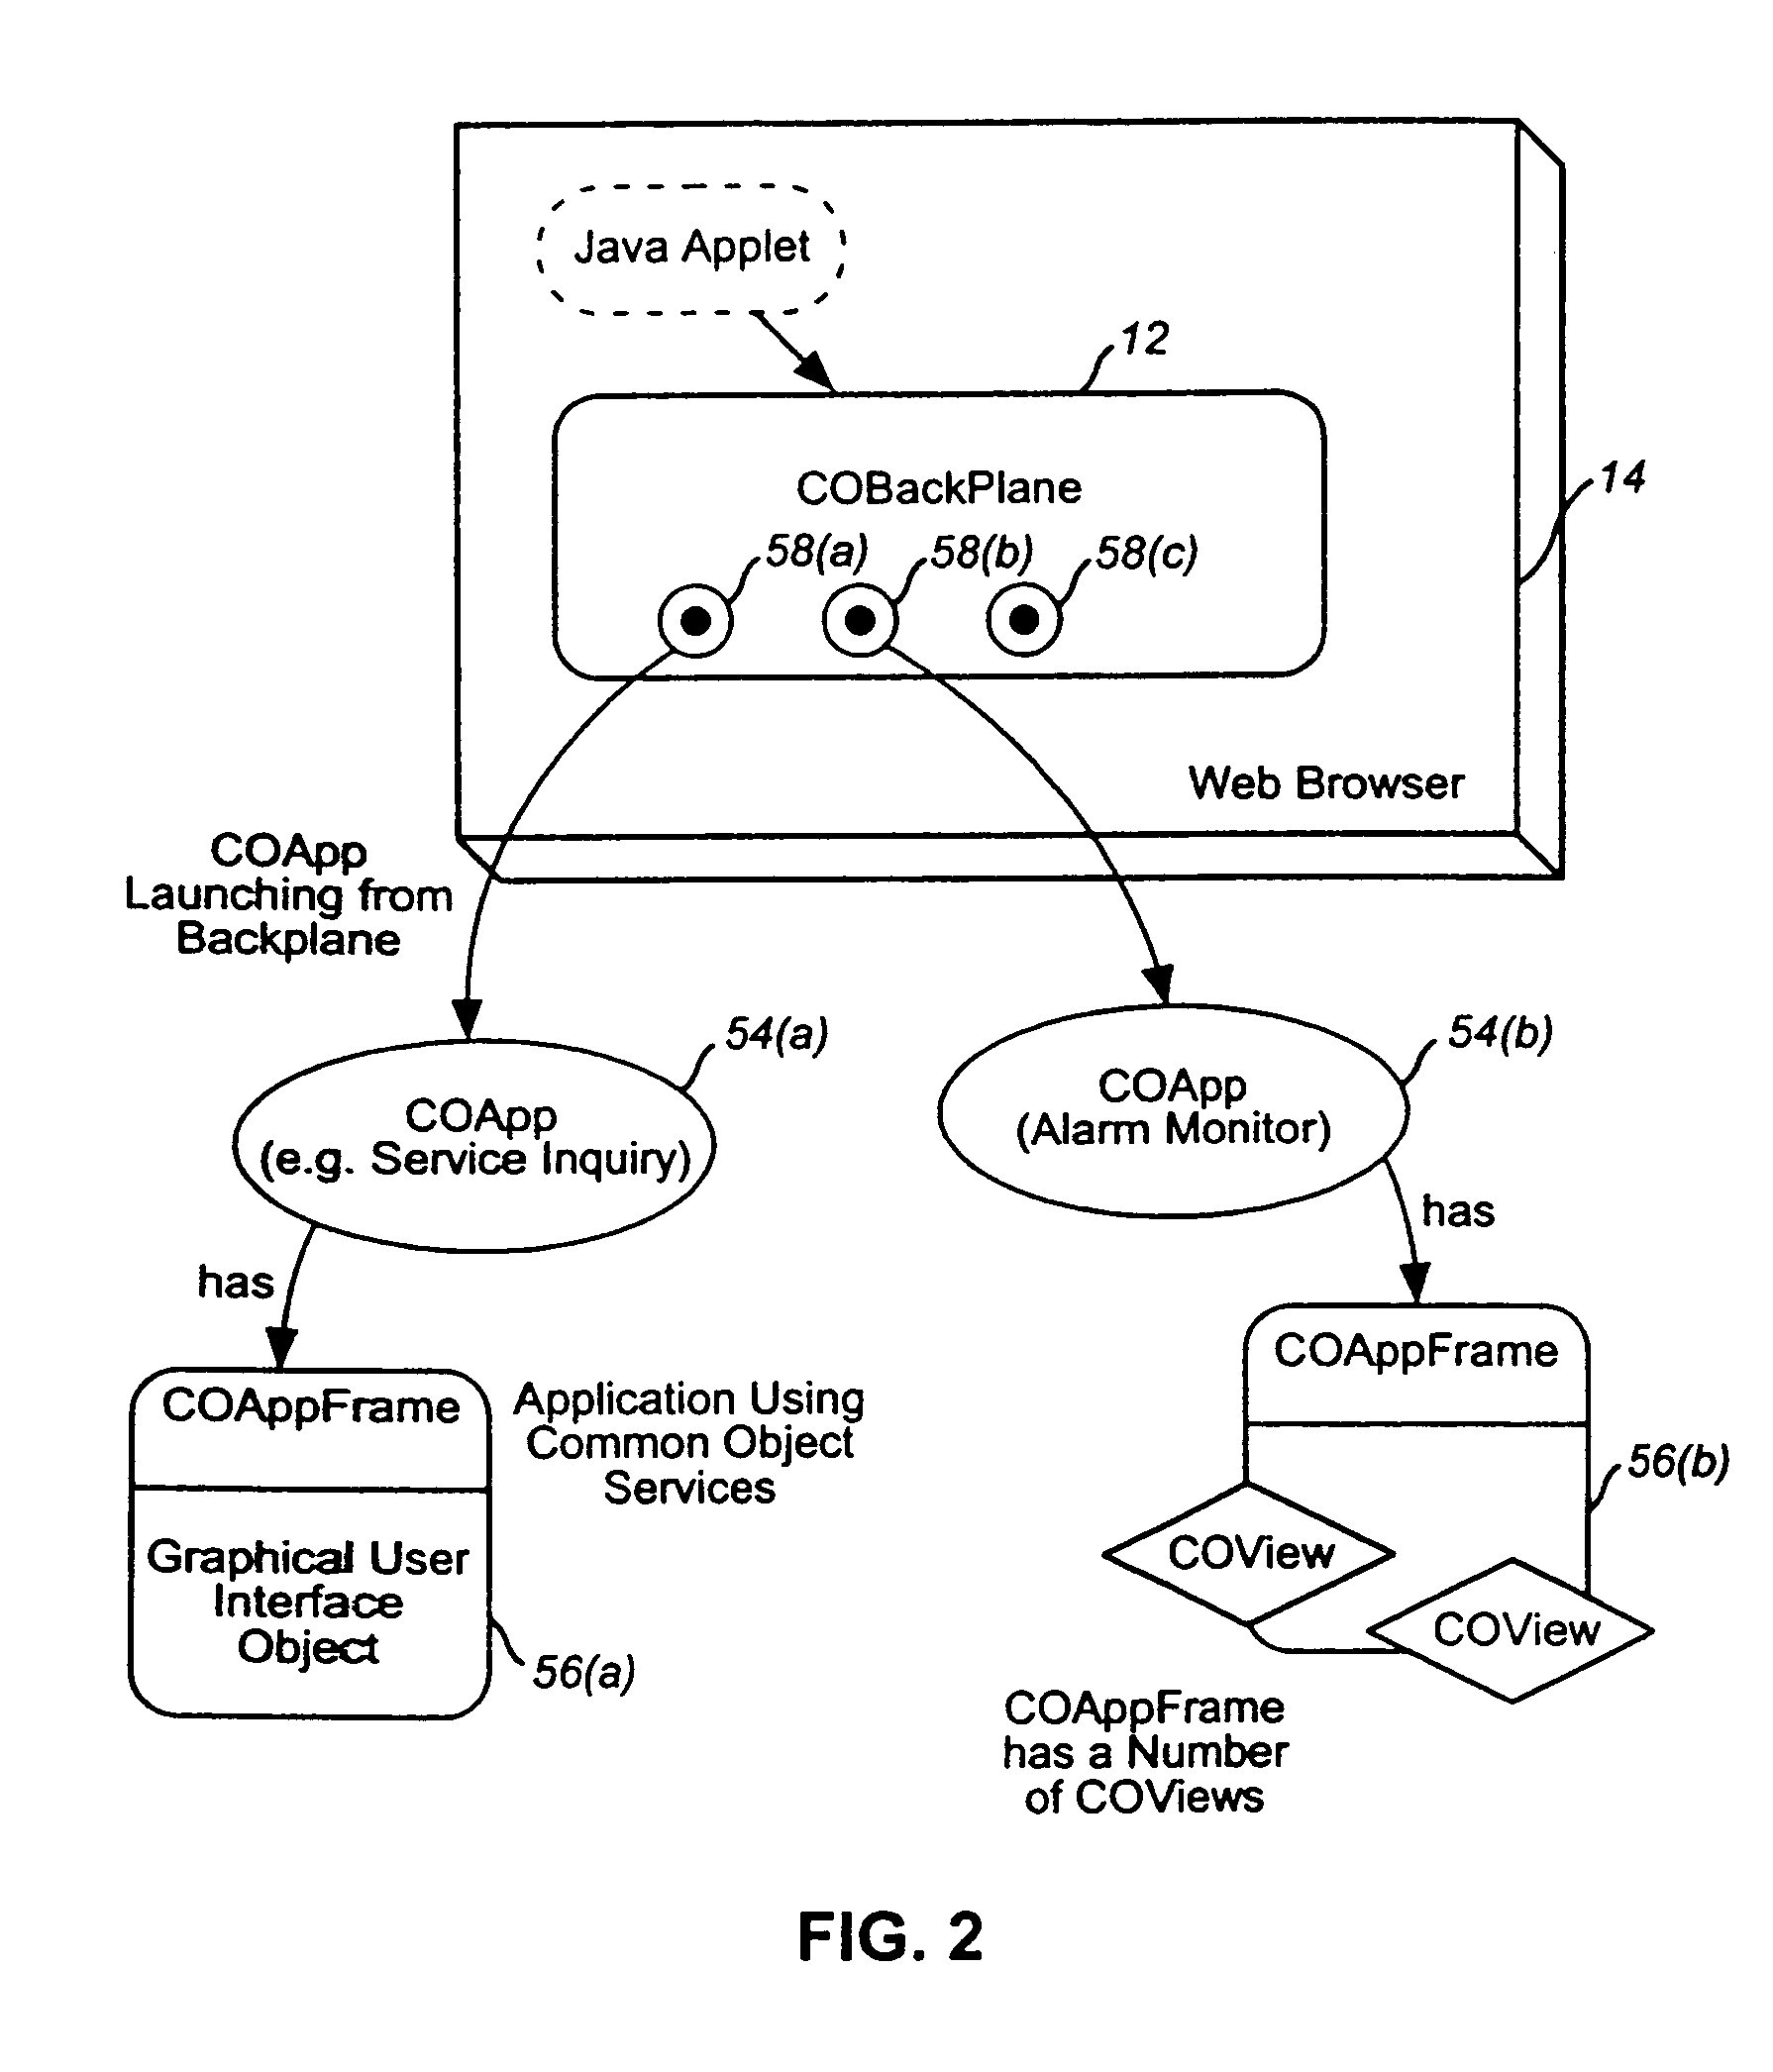 Us8495724b2 Secure Server Architecture For Web Based Data Wiring Instructions Charles Schwab Management Google Patents